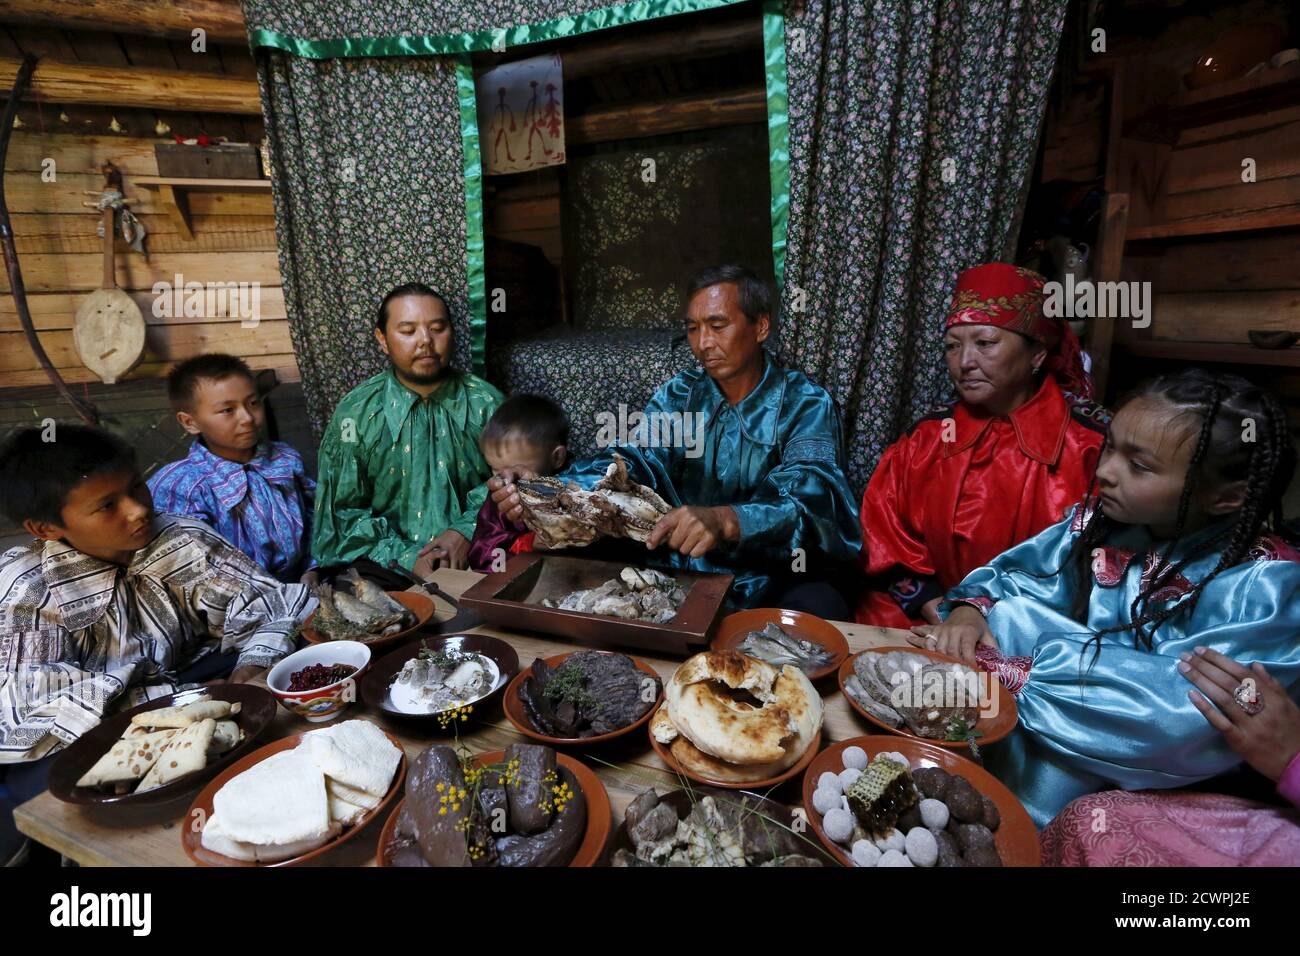 "Members of national folklore and ethnographic groups and employees of a museum-preserve participate in the reconstruction of daily life and traditional holidays celebrated by indigenous population of the Republic of Khakassia during a demonstration for visitors inside a traditional wooden yurt near Kazanovka village, southwest of the city of Abakan, Russia, July 24, 2015. The ""Khakas aal"" (Khakas settlement) ethnographic complex demonstrates the model of a traditional local settlement of the 19th century based on local traditional wooden yurts. The museum preserve is located in a picturesque f Stock Photo"